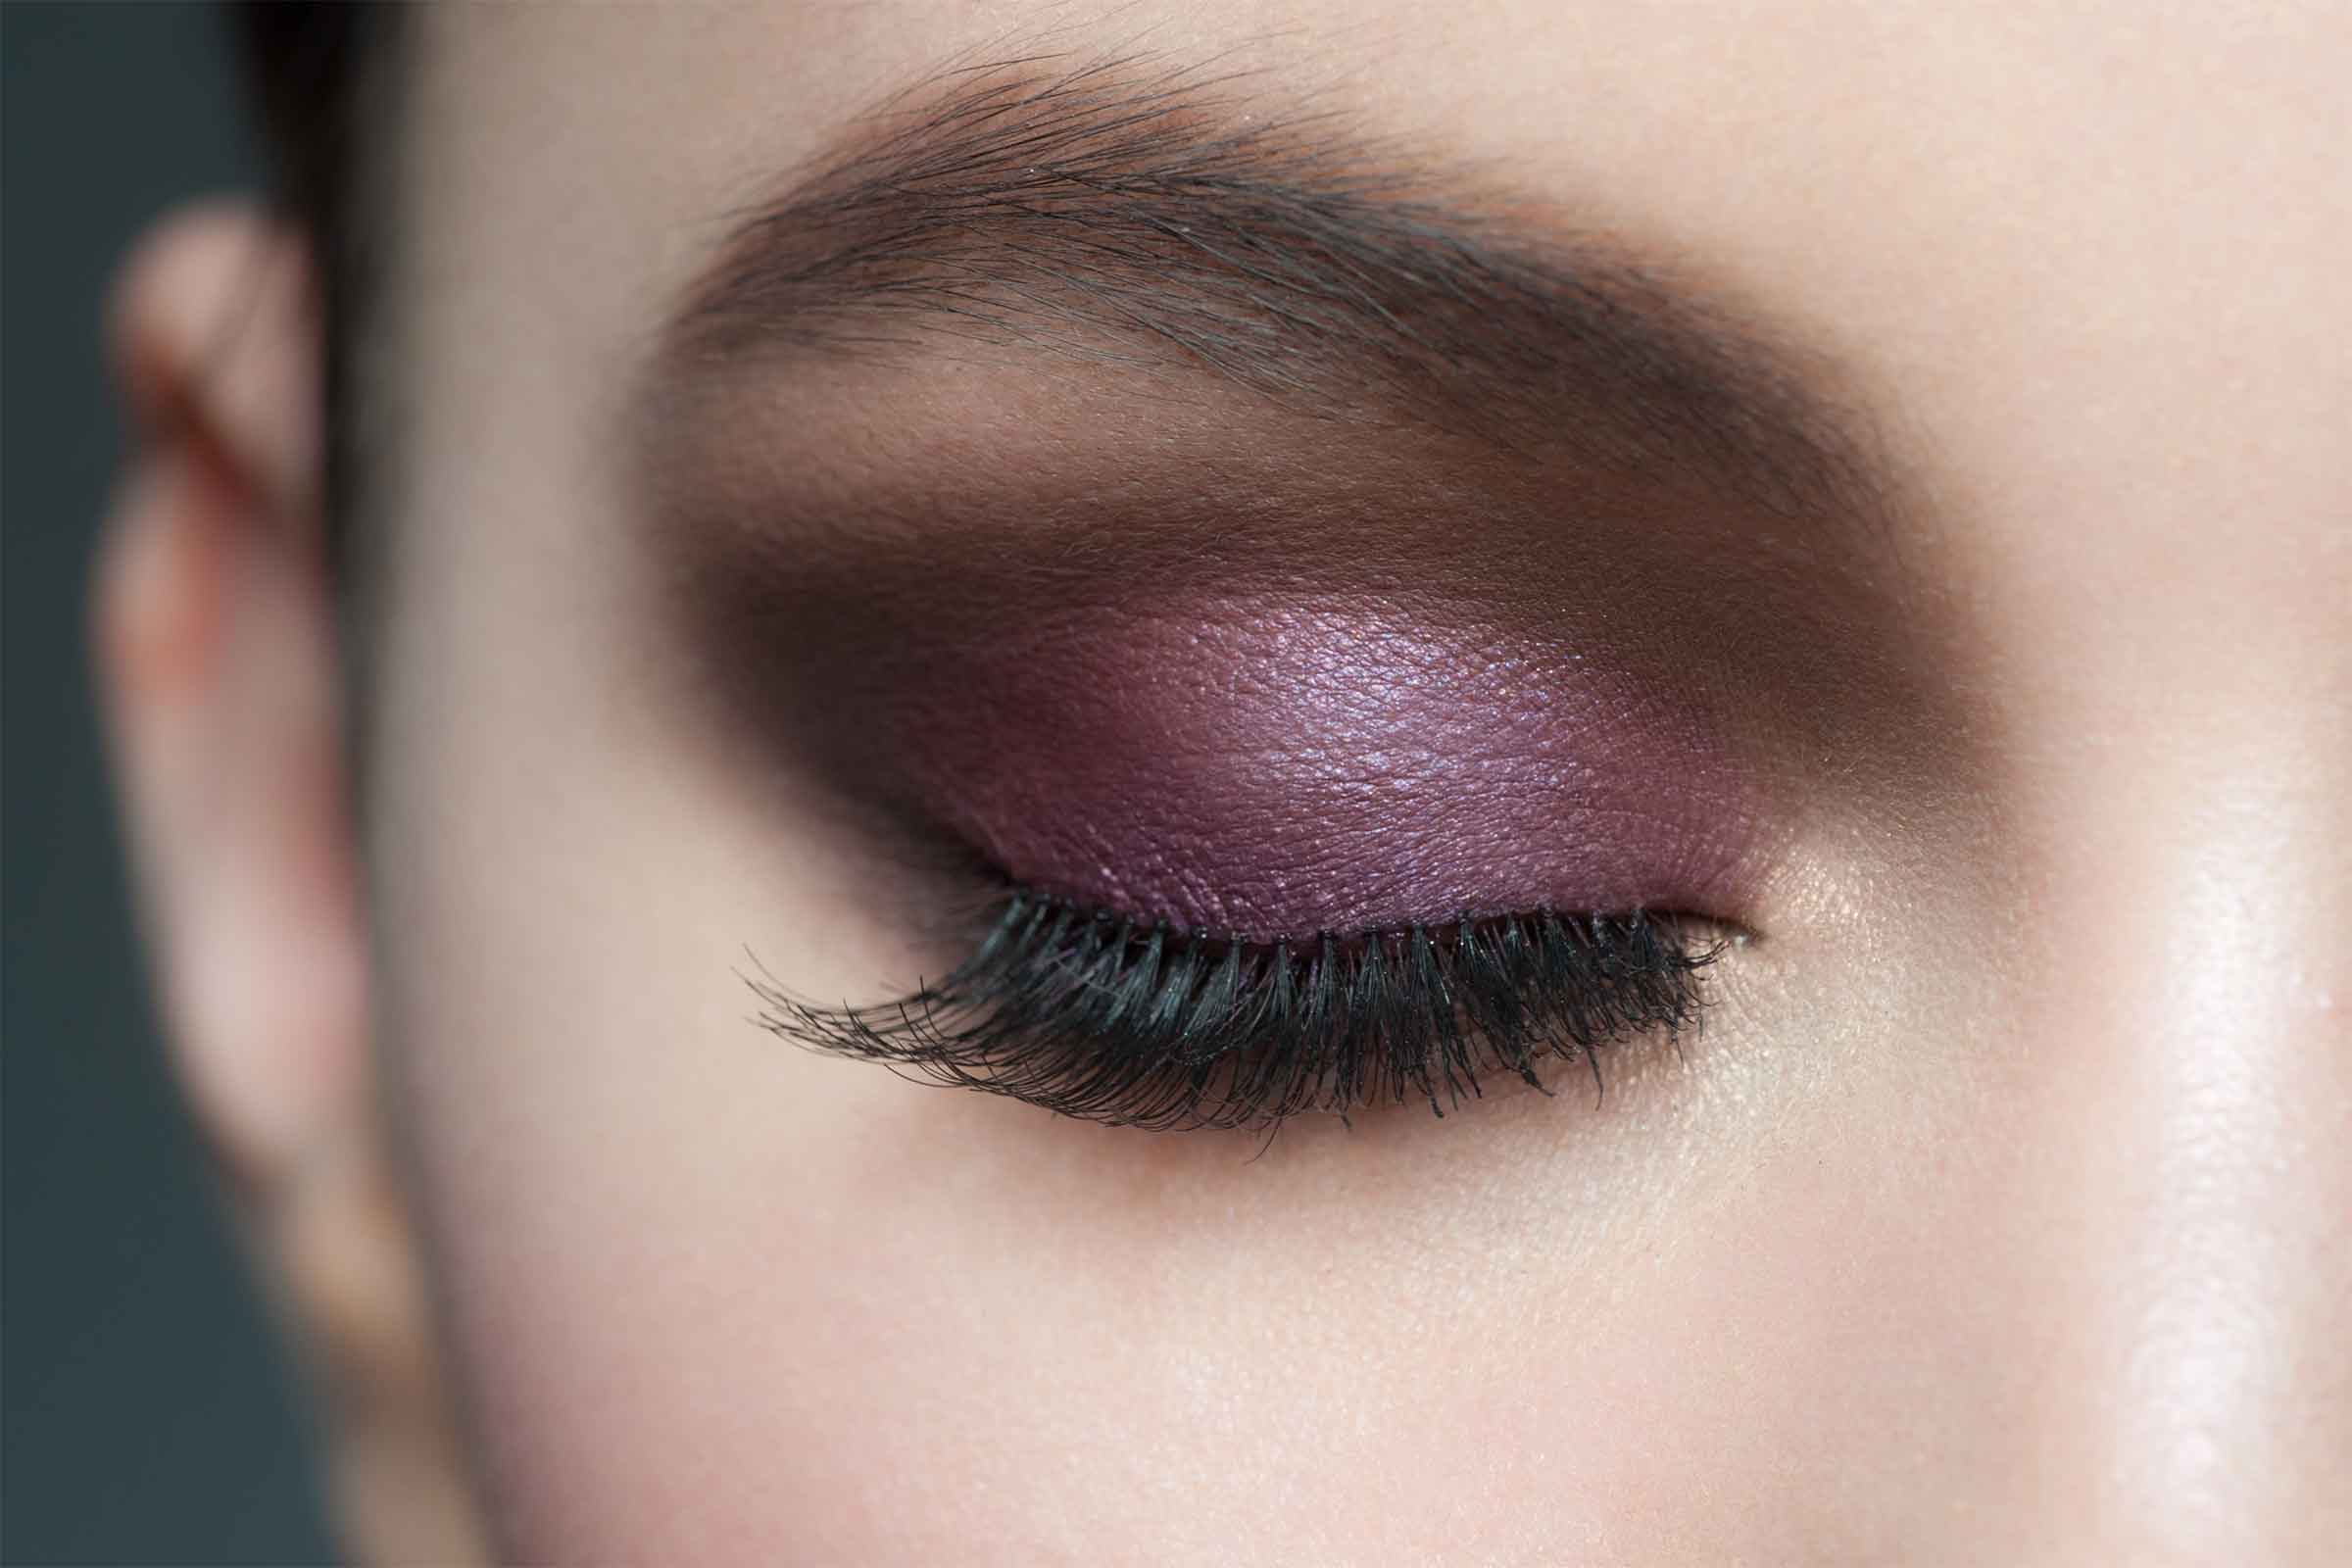 Eye Makeup Tips: 7 Ways To Make Your Eyes Pop